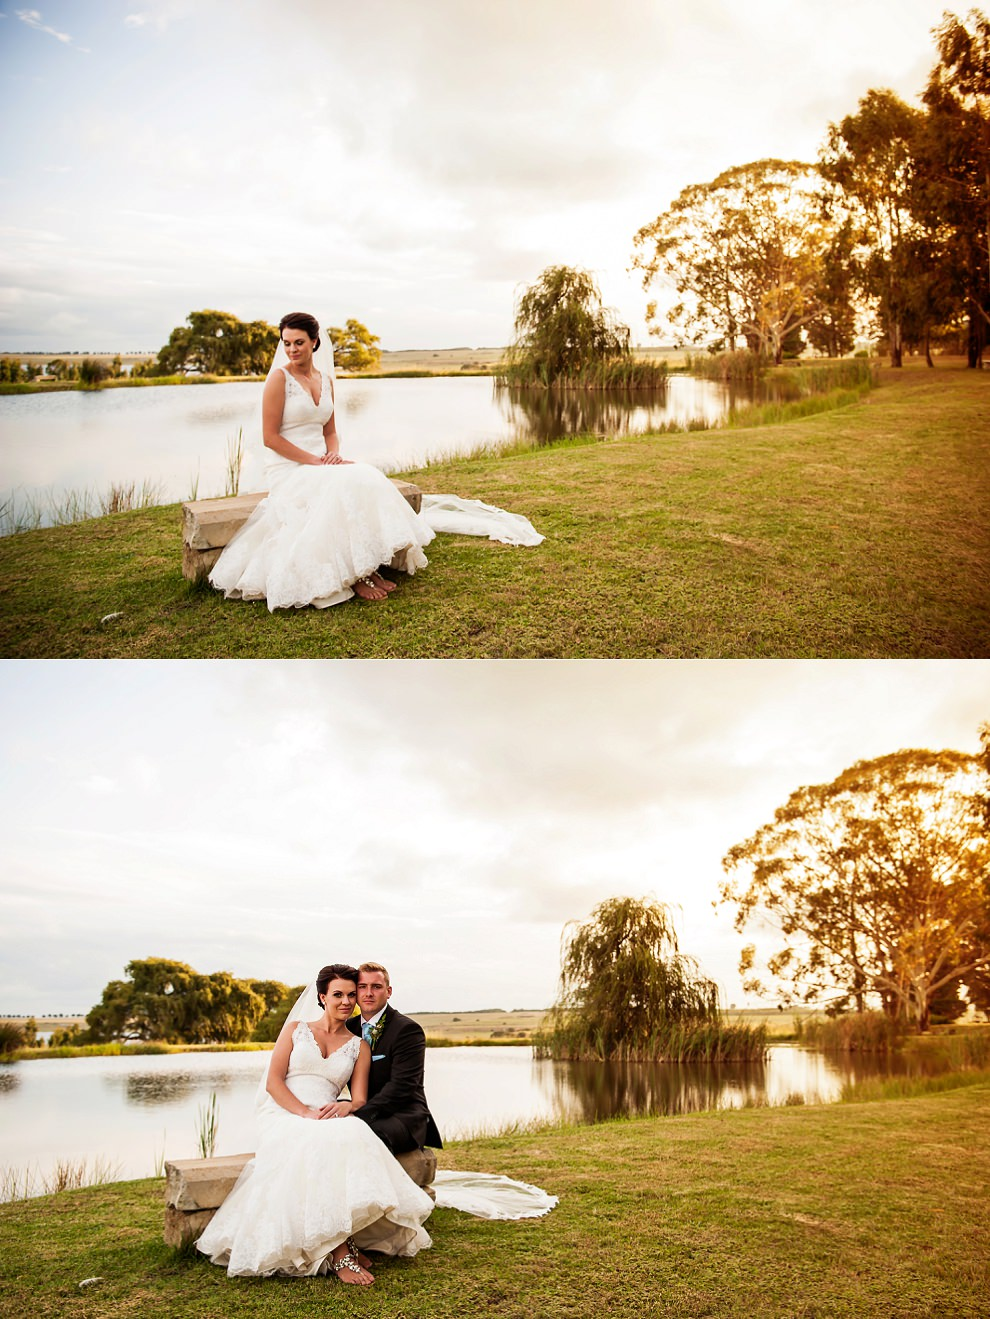 Anja-Mike-Forest-Wedding-South-Africa-70